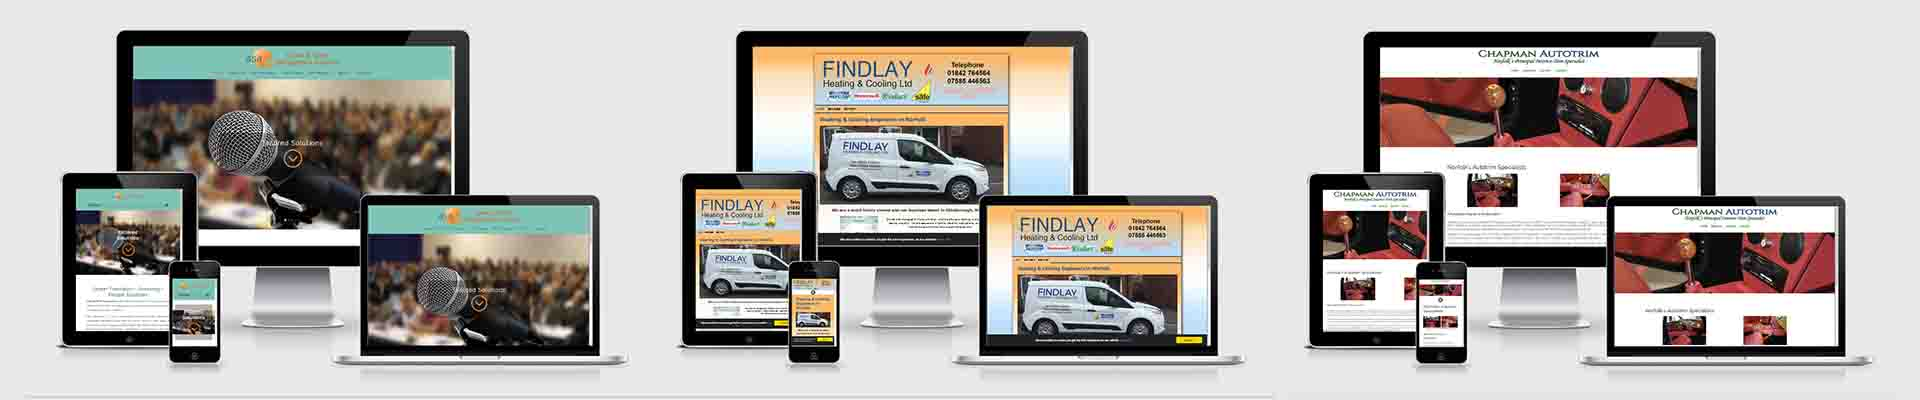 Websites designs created by Norfolk Web Designers on different sized screens